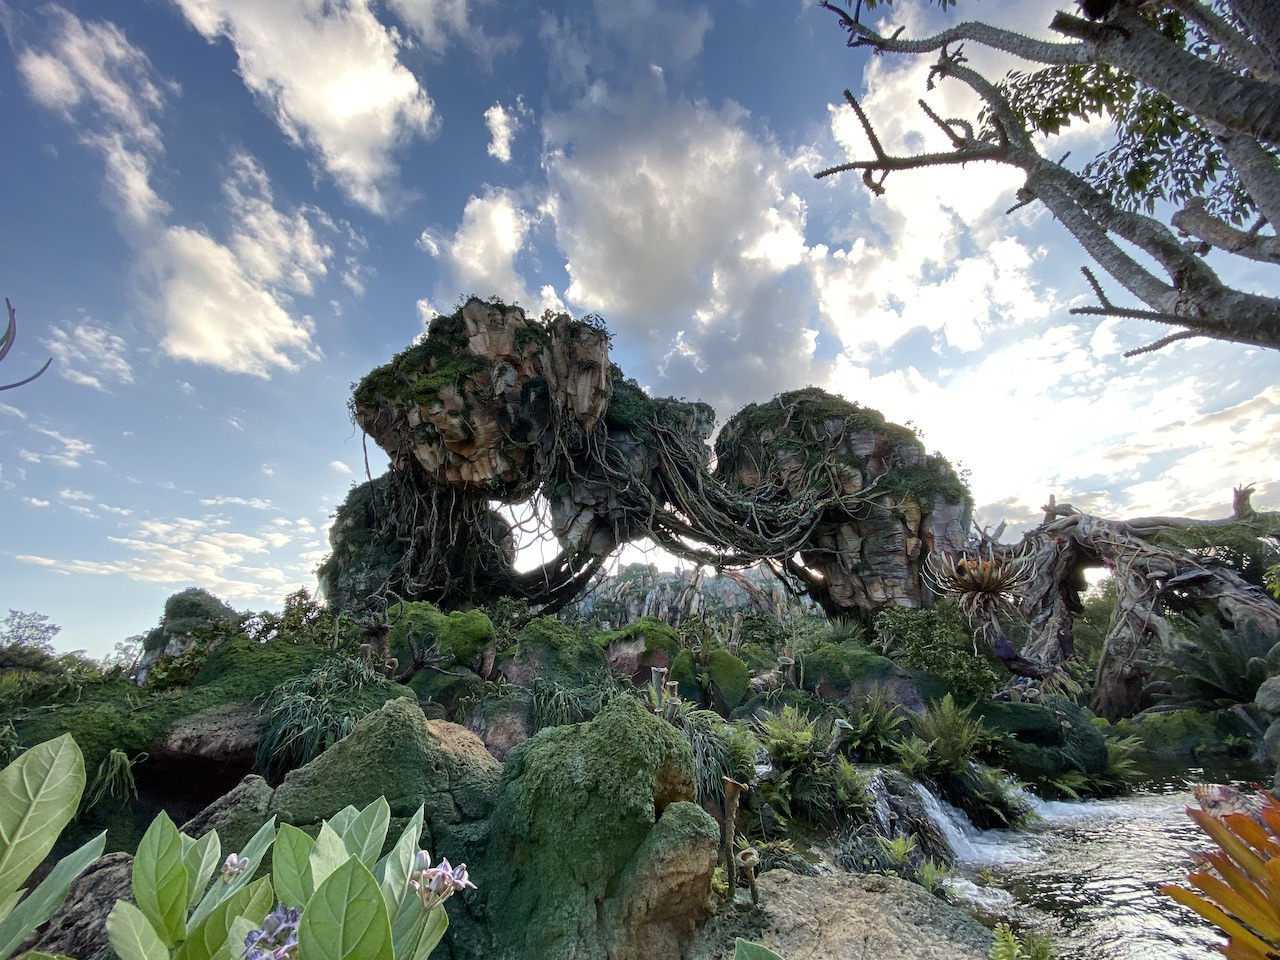 Pandora at Disney's Animal Kingdom